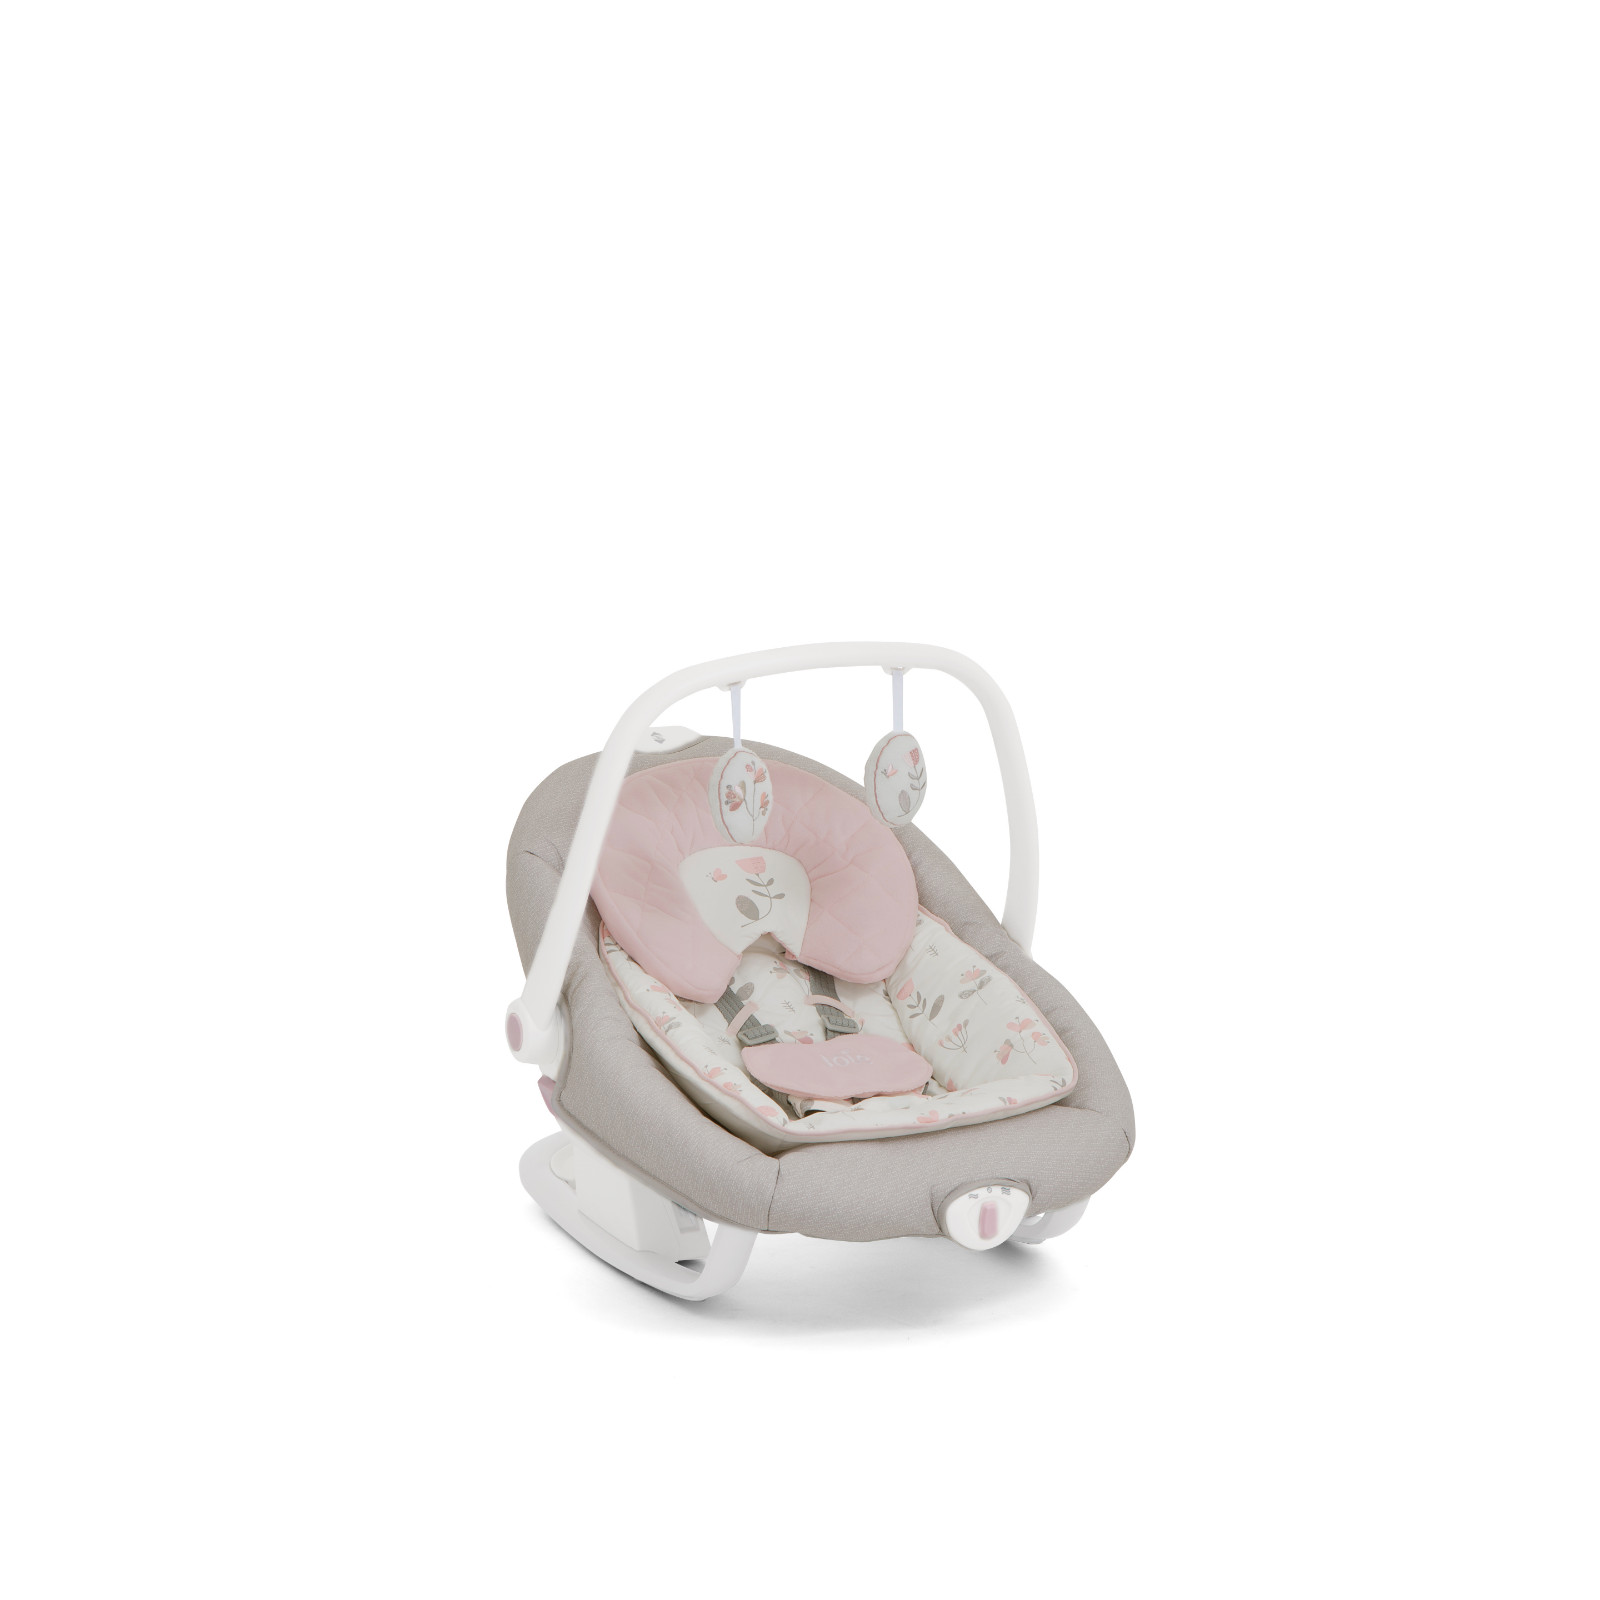 Joie Serina 2in1 Swing Rocker Forever Flowers Buy At